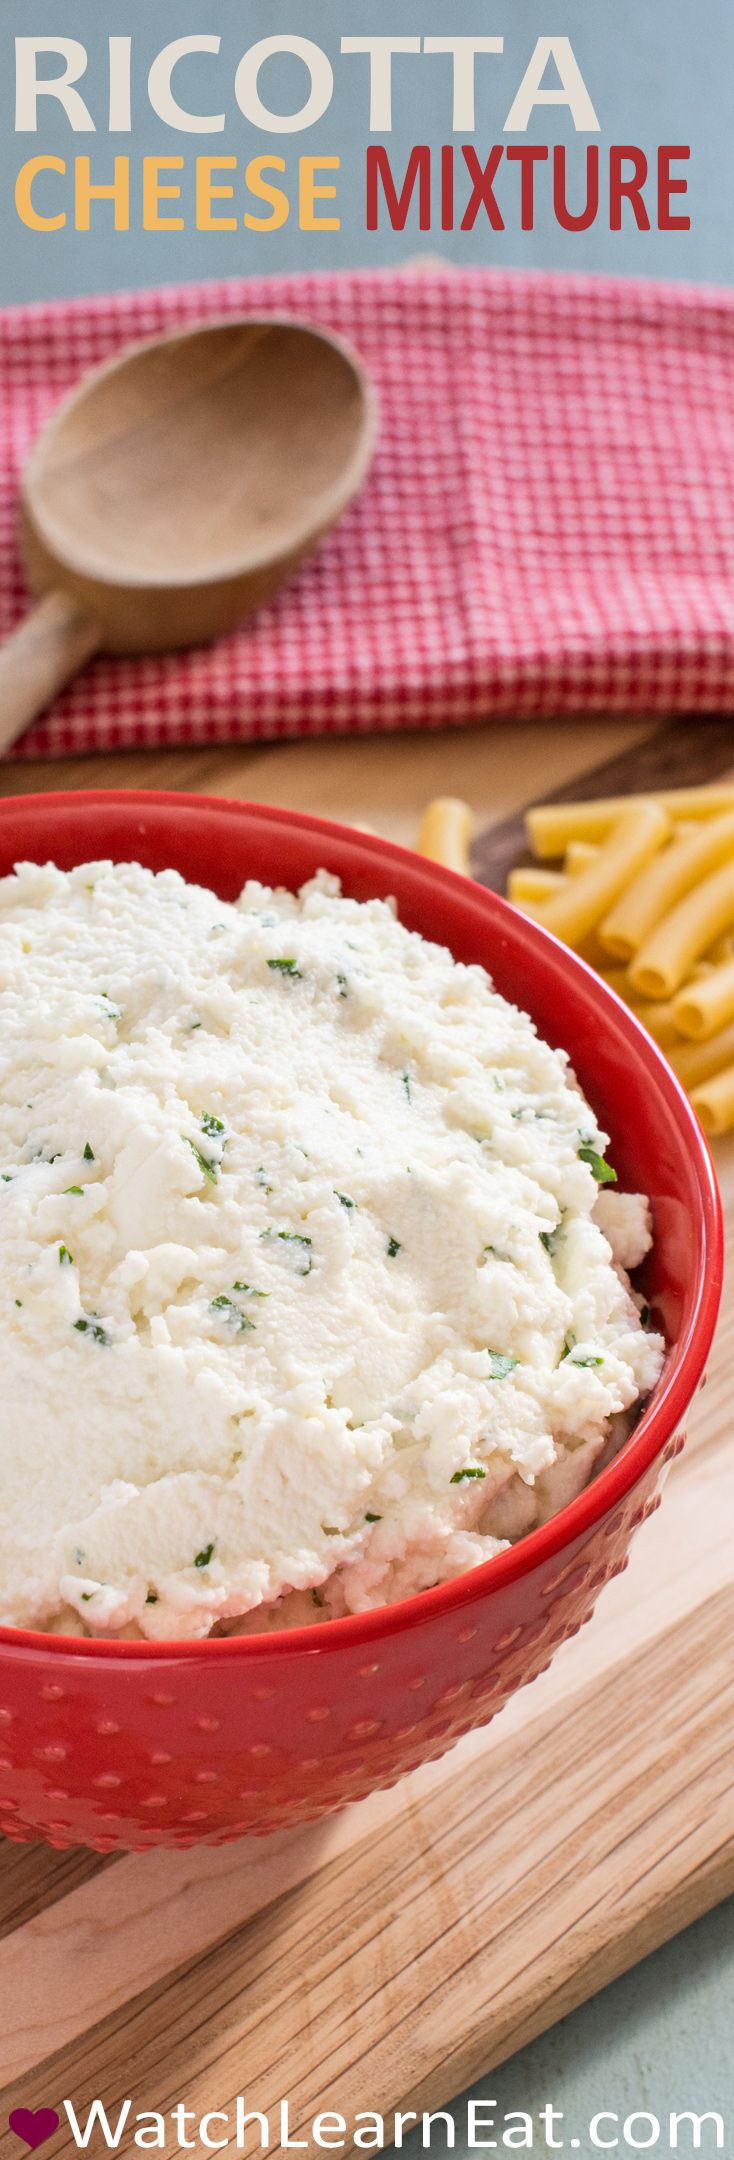 This ricotta cheese mixture features mozzarella and Romano cheeses and is perfect for your favorite Italian baked dishes - lasagna, baked ziti and more.